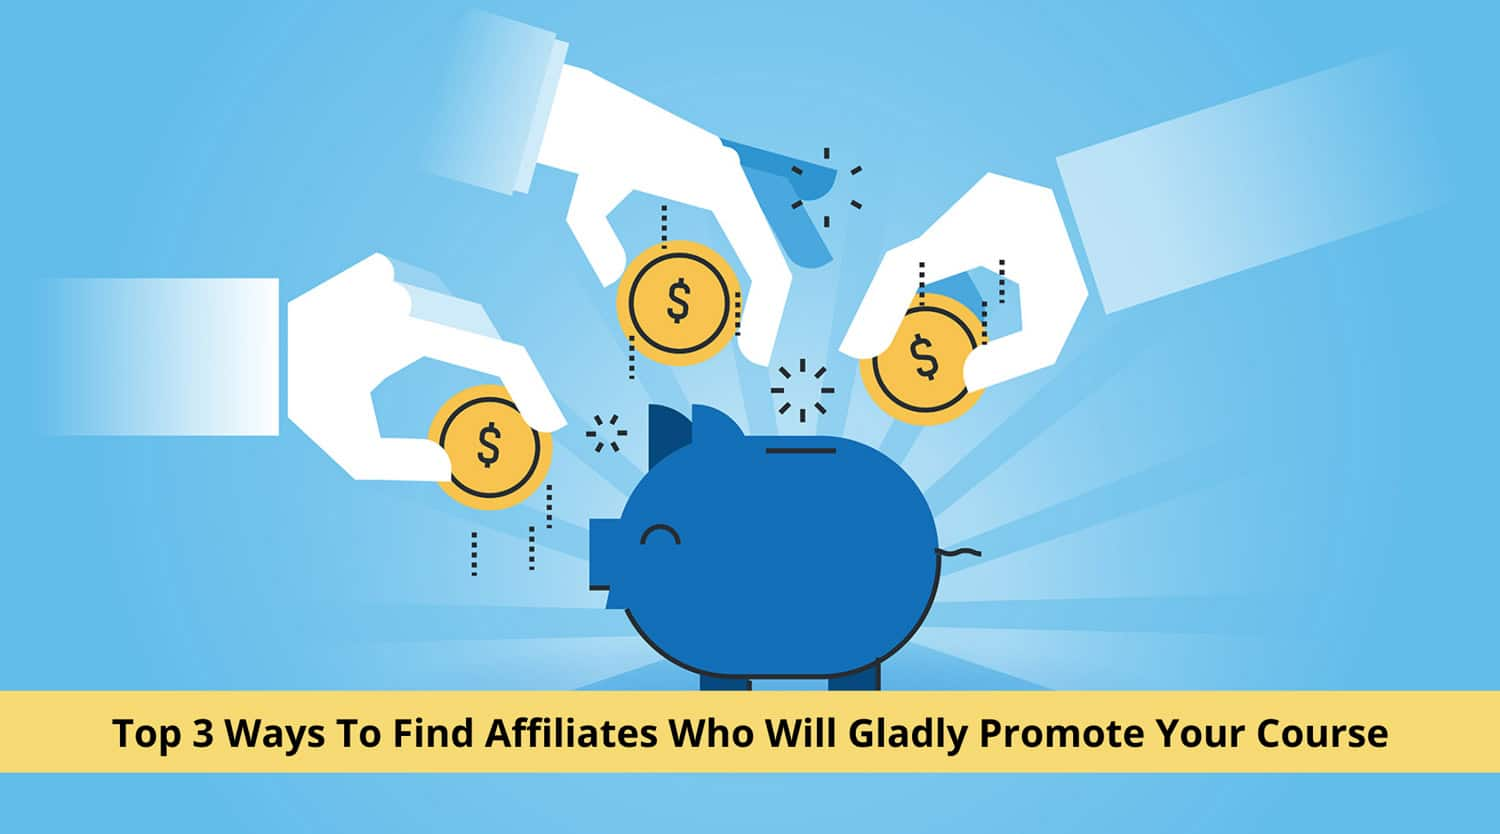 Top 3 Ways To Find Affiliates Who Will Gladly Promote Your Course